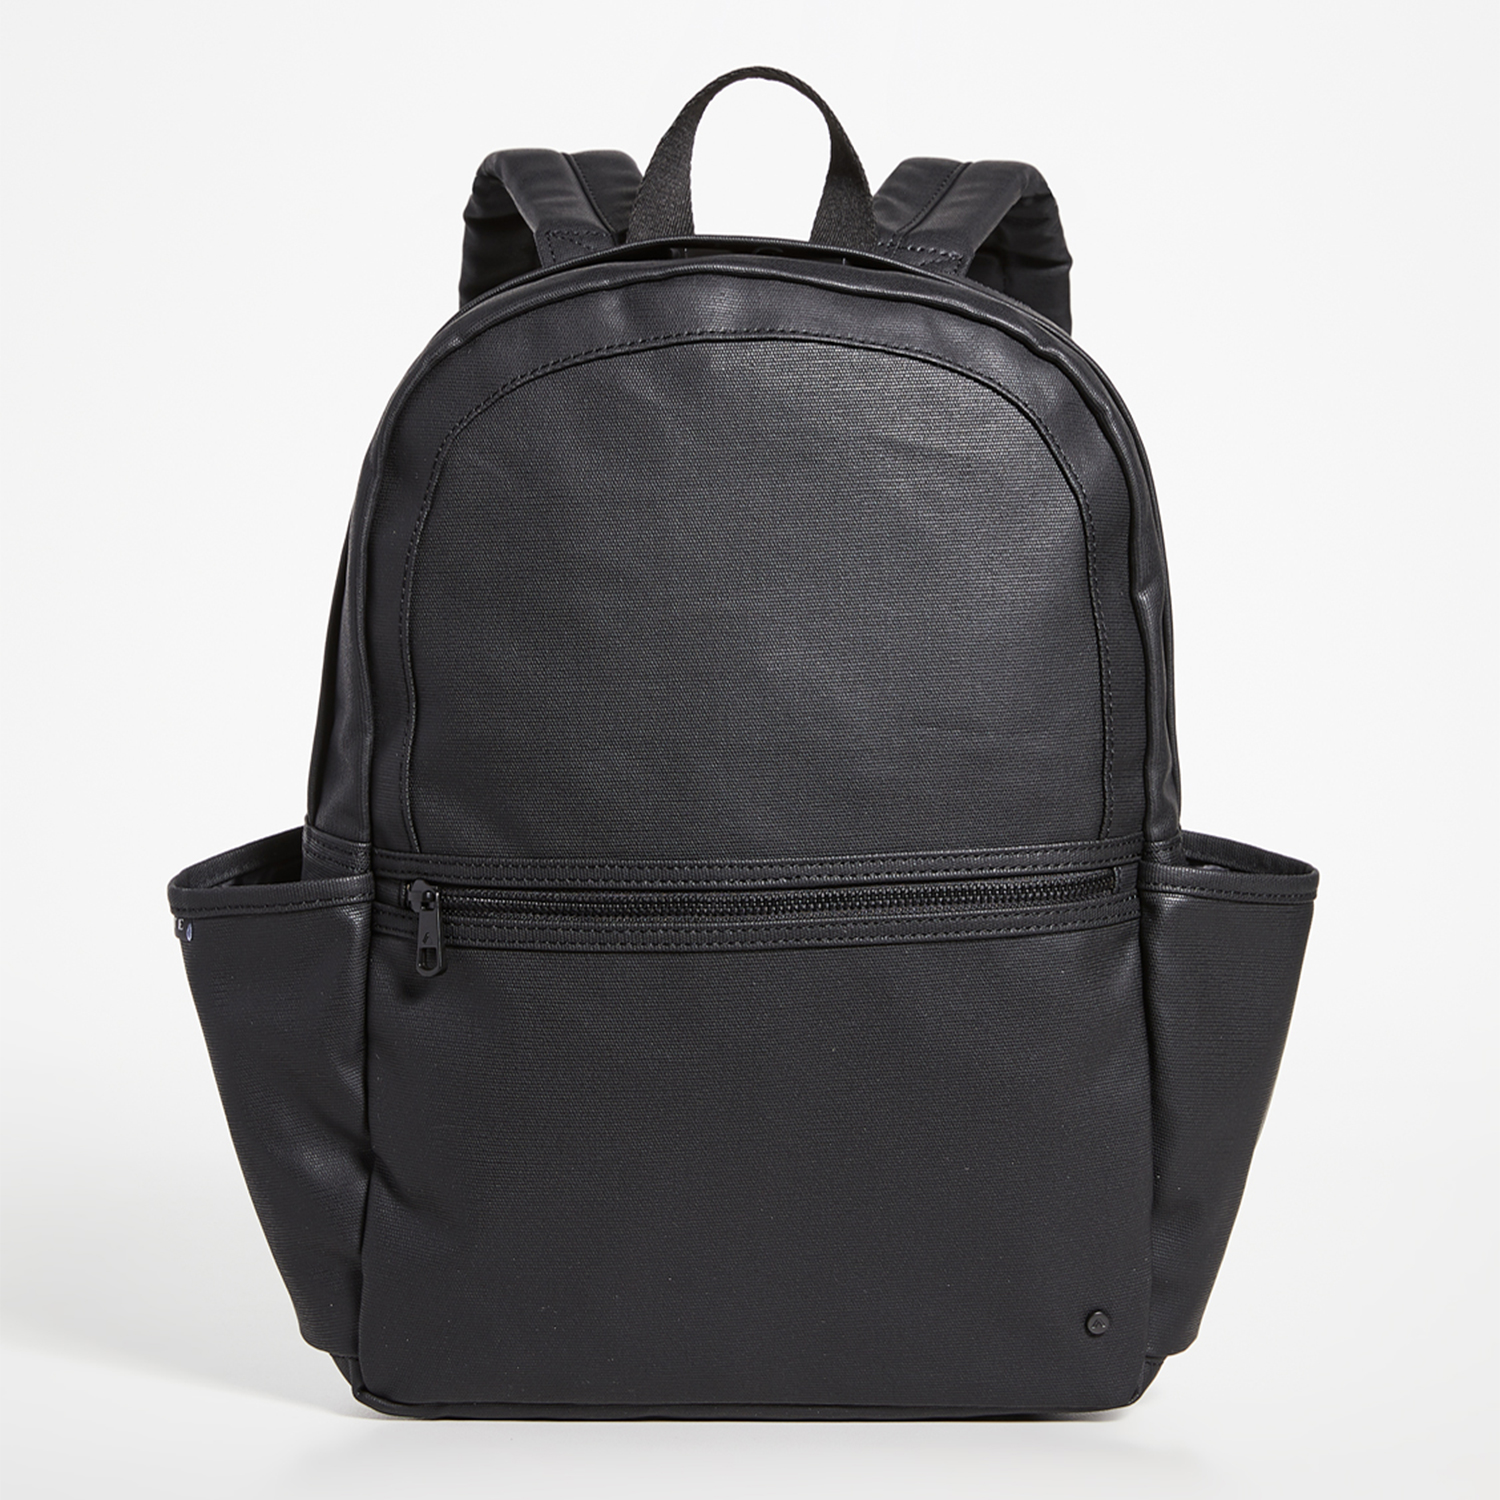 STATE Kane Coated Canvas Backpack